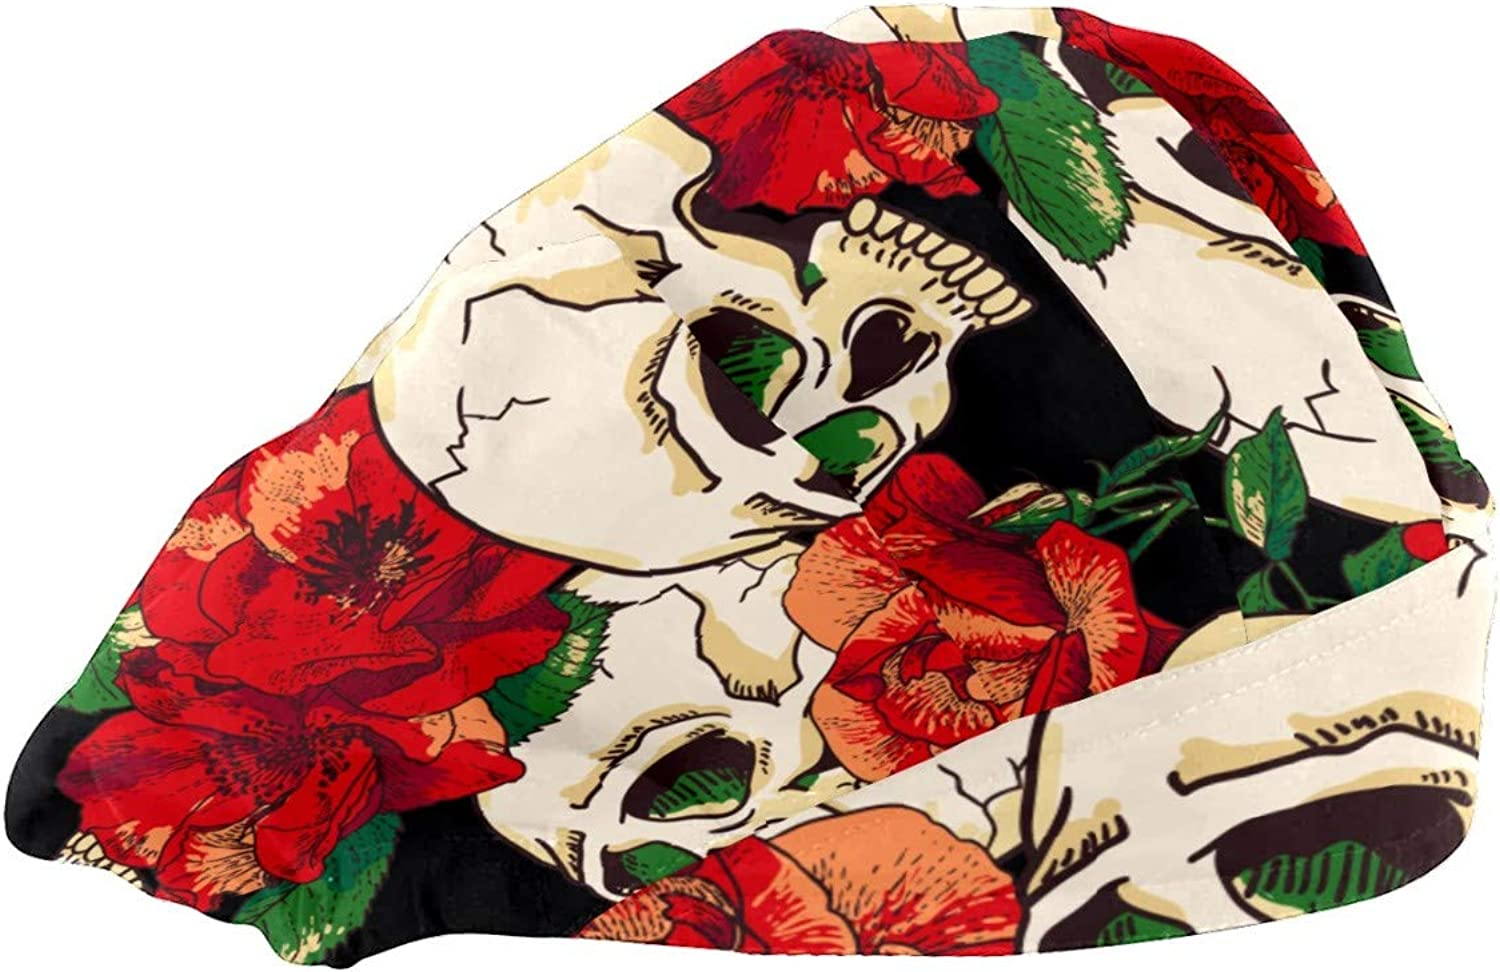 Veronica Nelson Adjustable Working Cap with Elastic Bouffant Hats with Print Halloween Skeleton Rose for Women Men, One Size